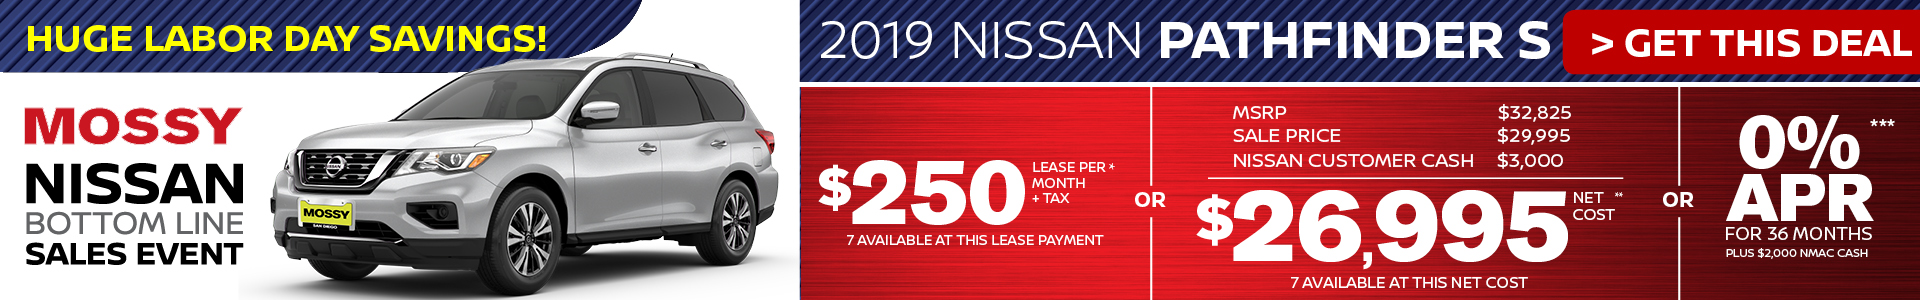 Mossy Nissan - Nissan Pathfinder $26,995 Purchase